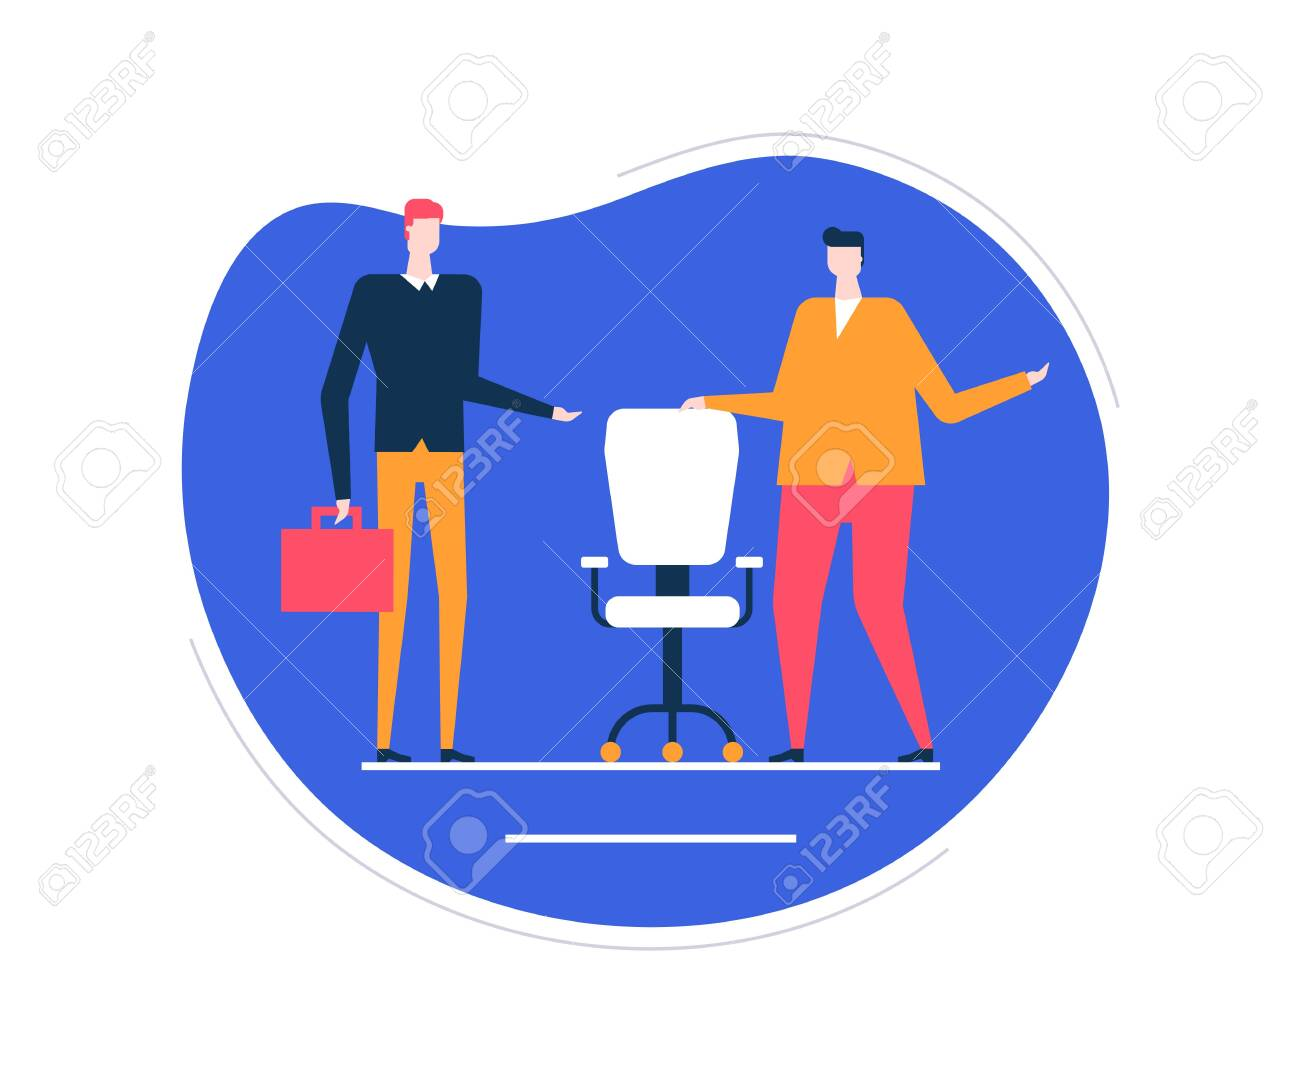 Available vacancy - flat design style colorful illustration on white background. Unusual composition with male HR managers searching for a candidate, new employee, showing the free chair, workplace - 124131045